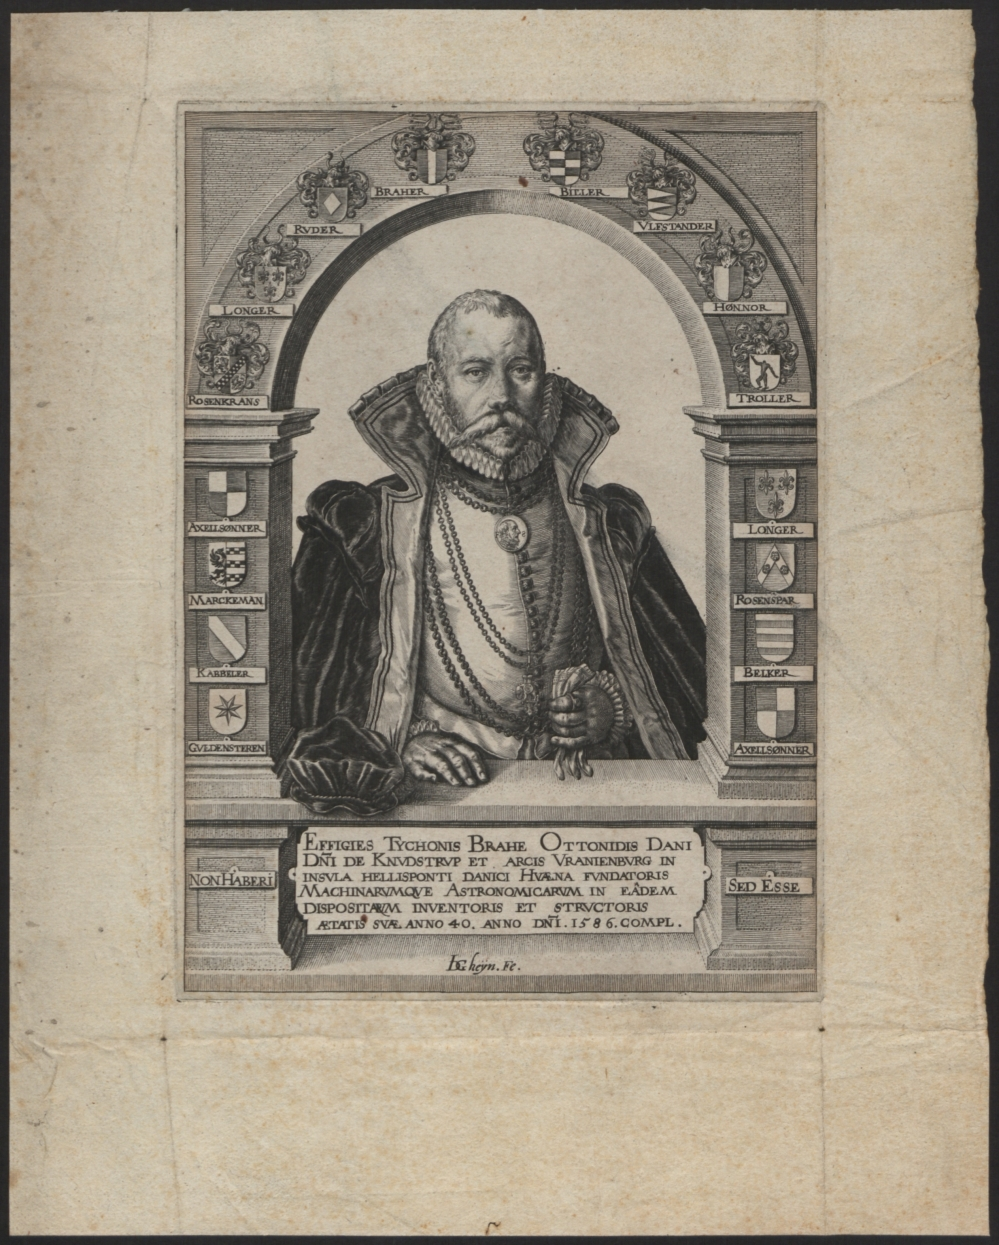 preview image for Print (Engraving) of Tycho Brahe, by Jaques de Gheyn, The Netherlands, 1586